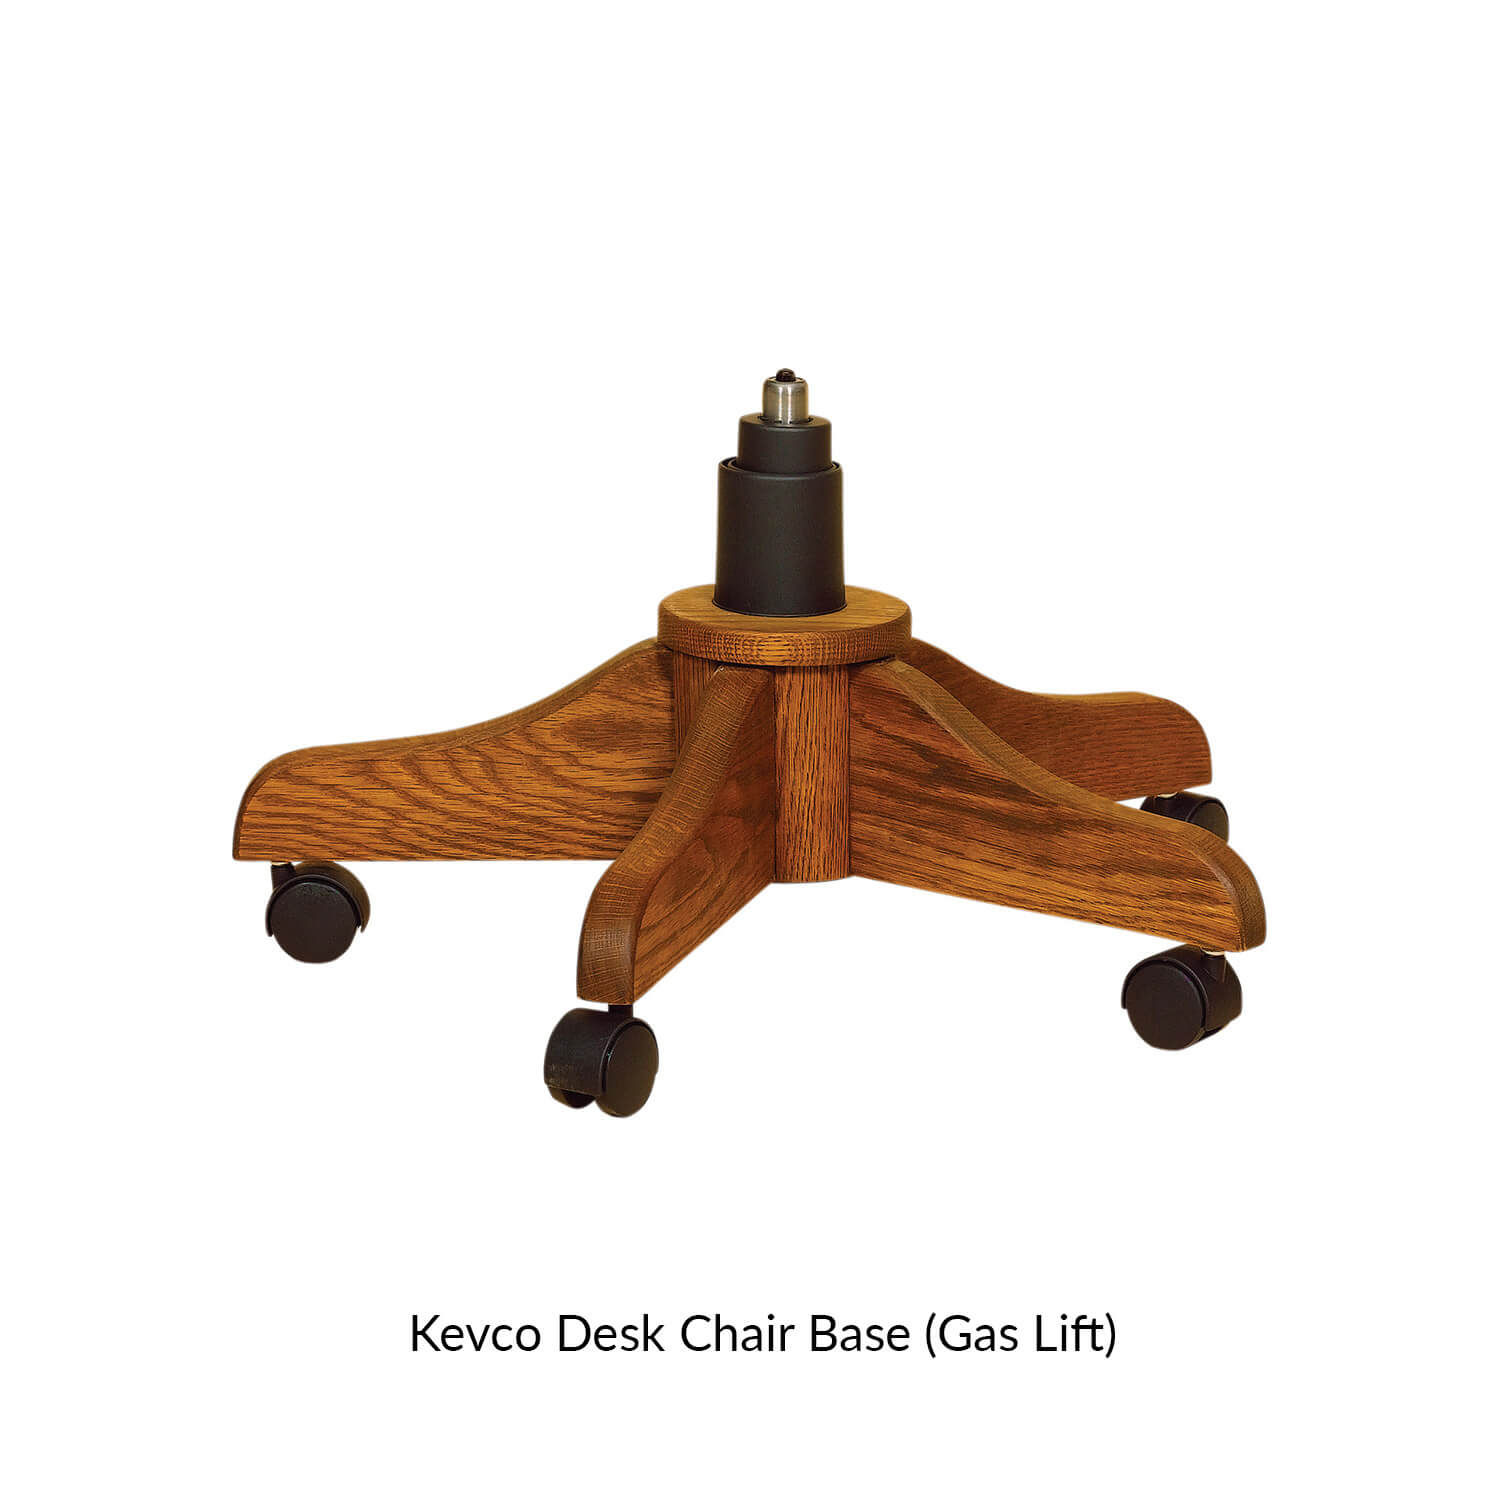 13.0-kevco-desk-chair-base-gas-lift-.jpg